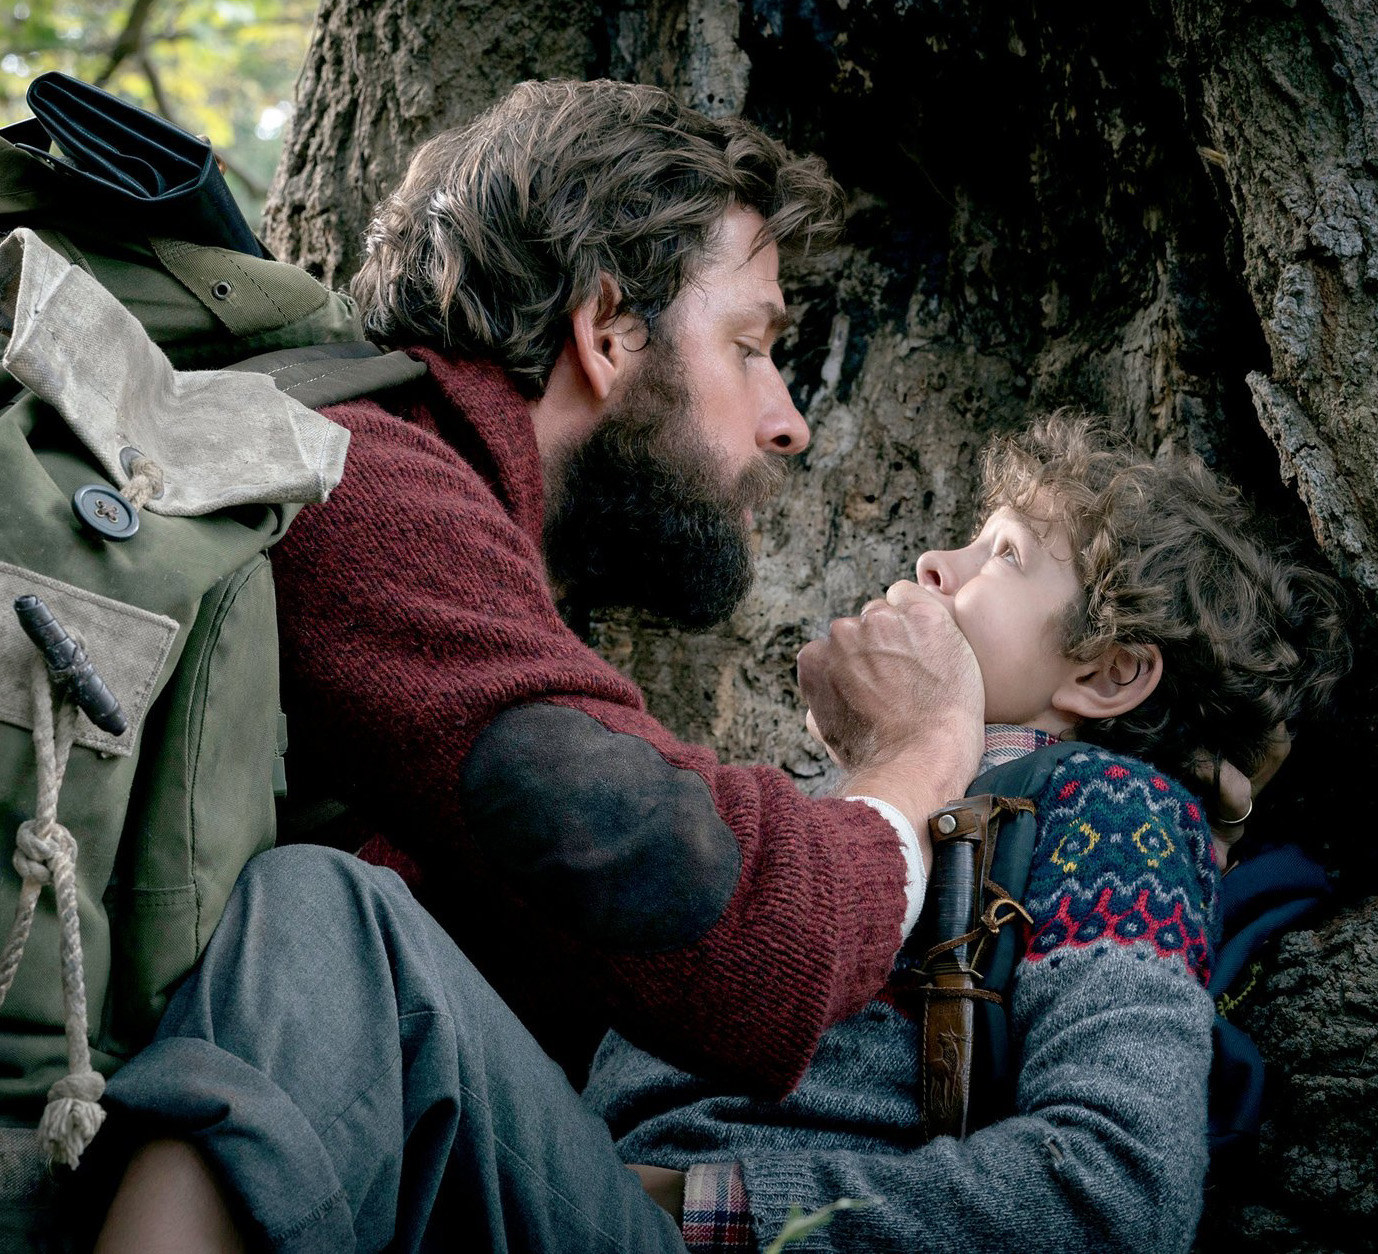 A Quiet Place 2 May Recycle Unused Scenes from First Movie